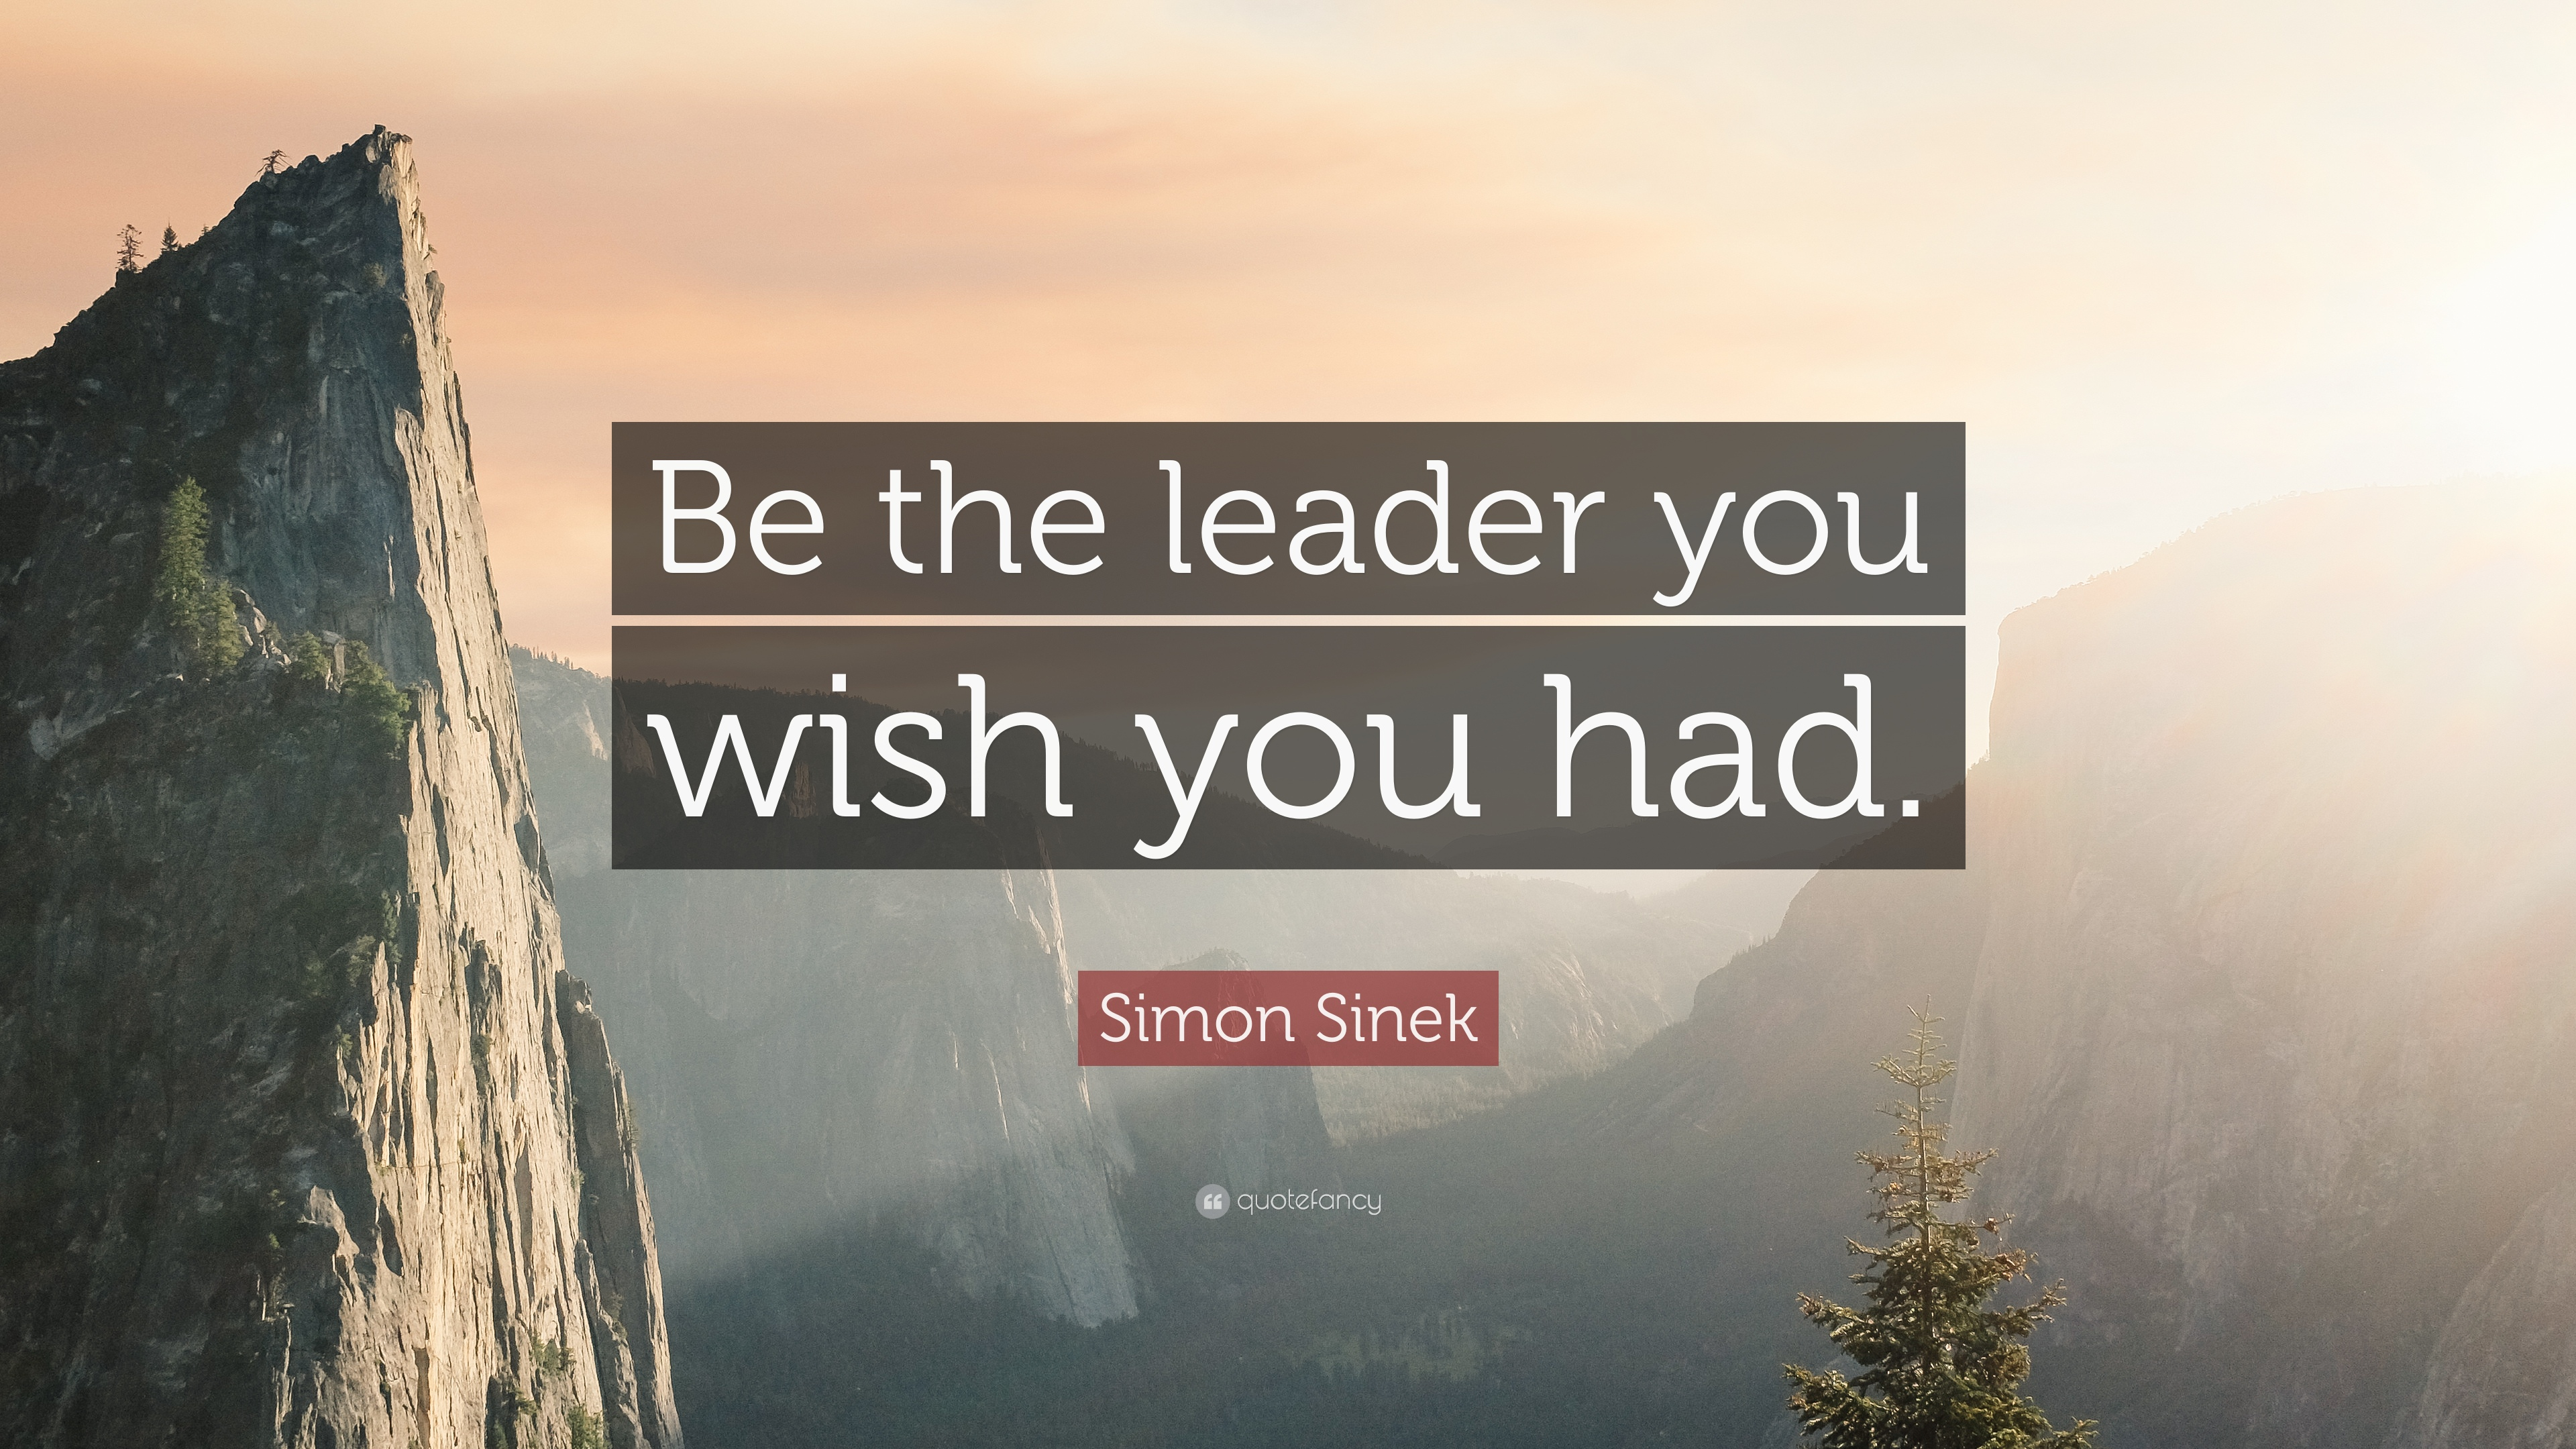 """Elon Musk Quotes >> Simon Sinek Quote: """"Be the leader you wish you had."""" (12 ..."""